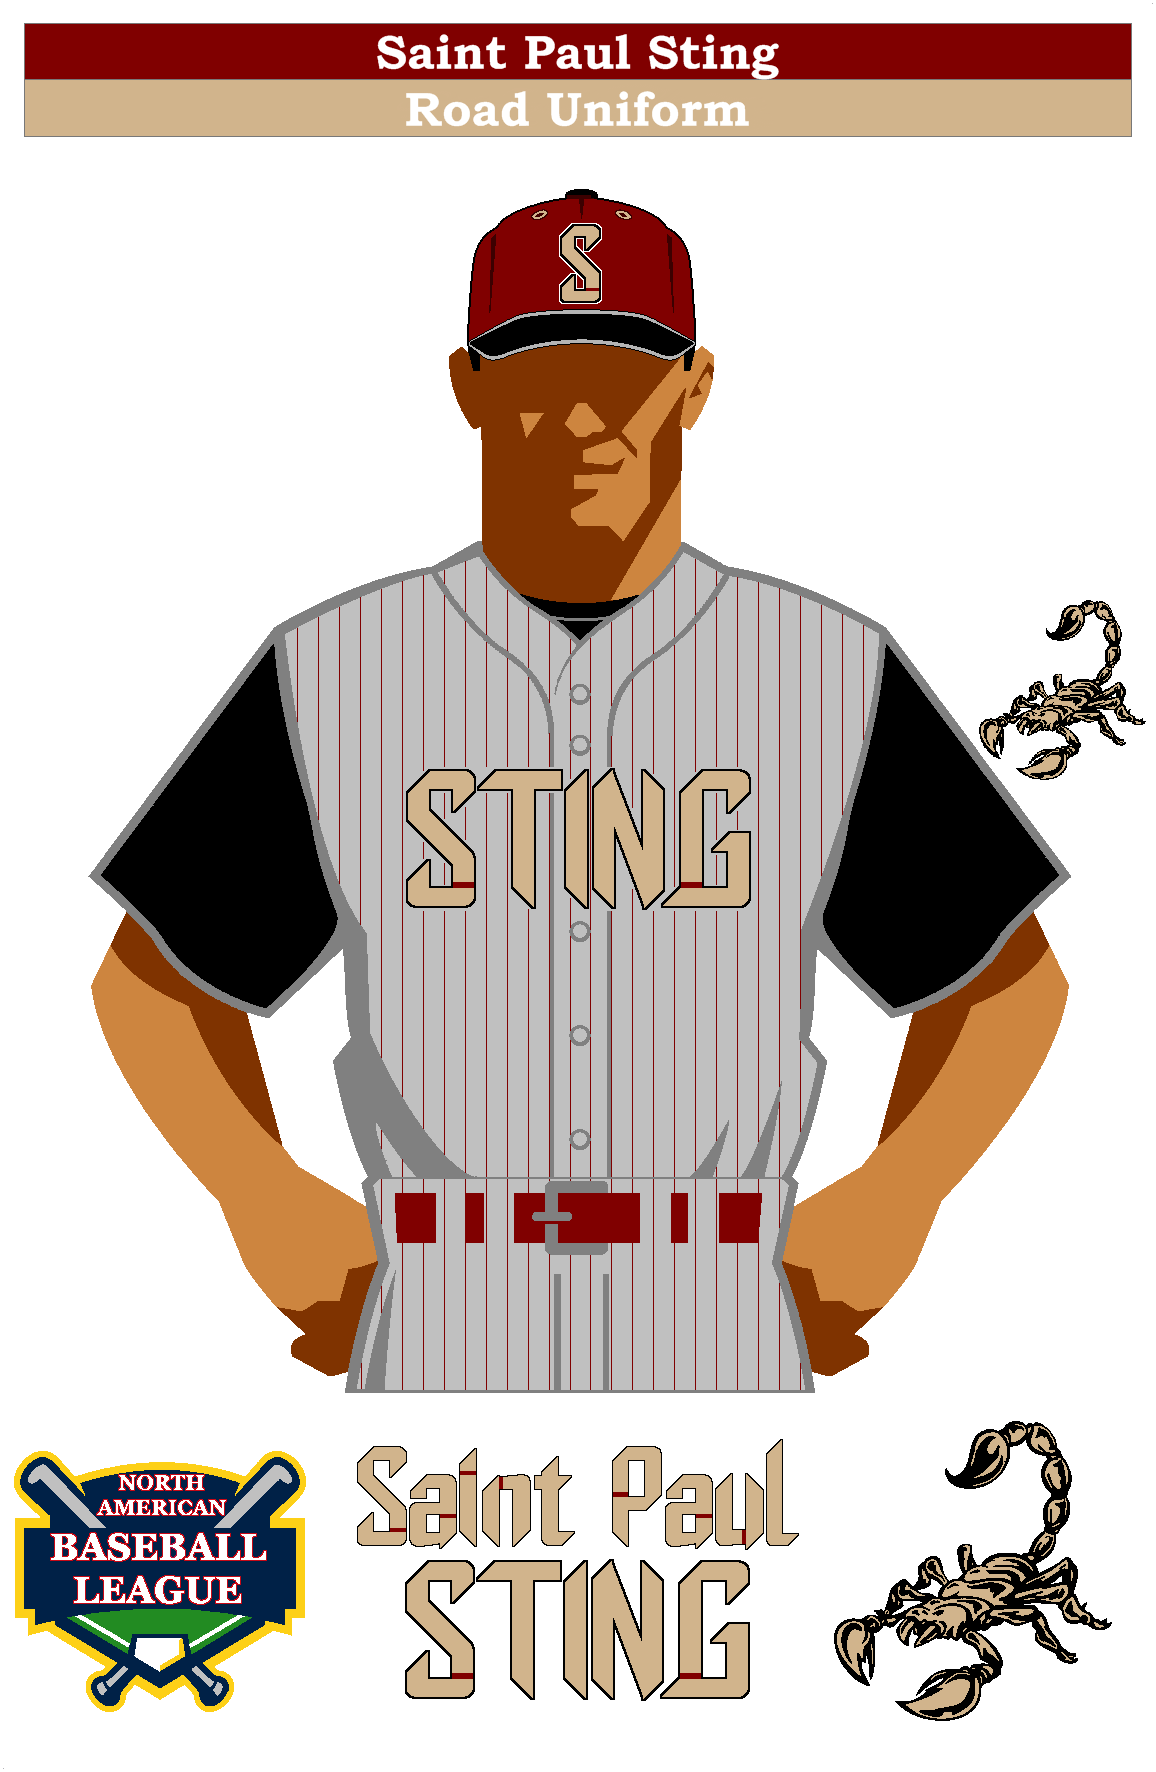 Saint Paul Sting Road Uniform Saint Paul Baseball League